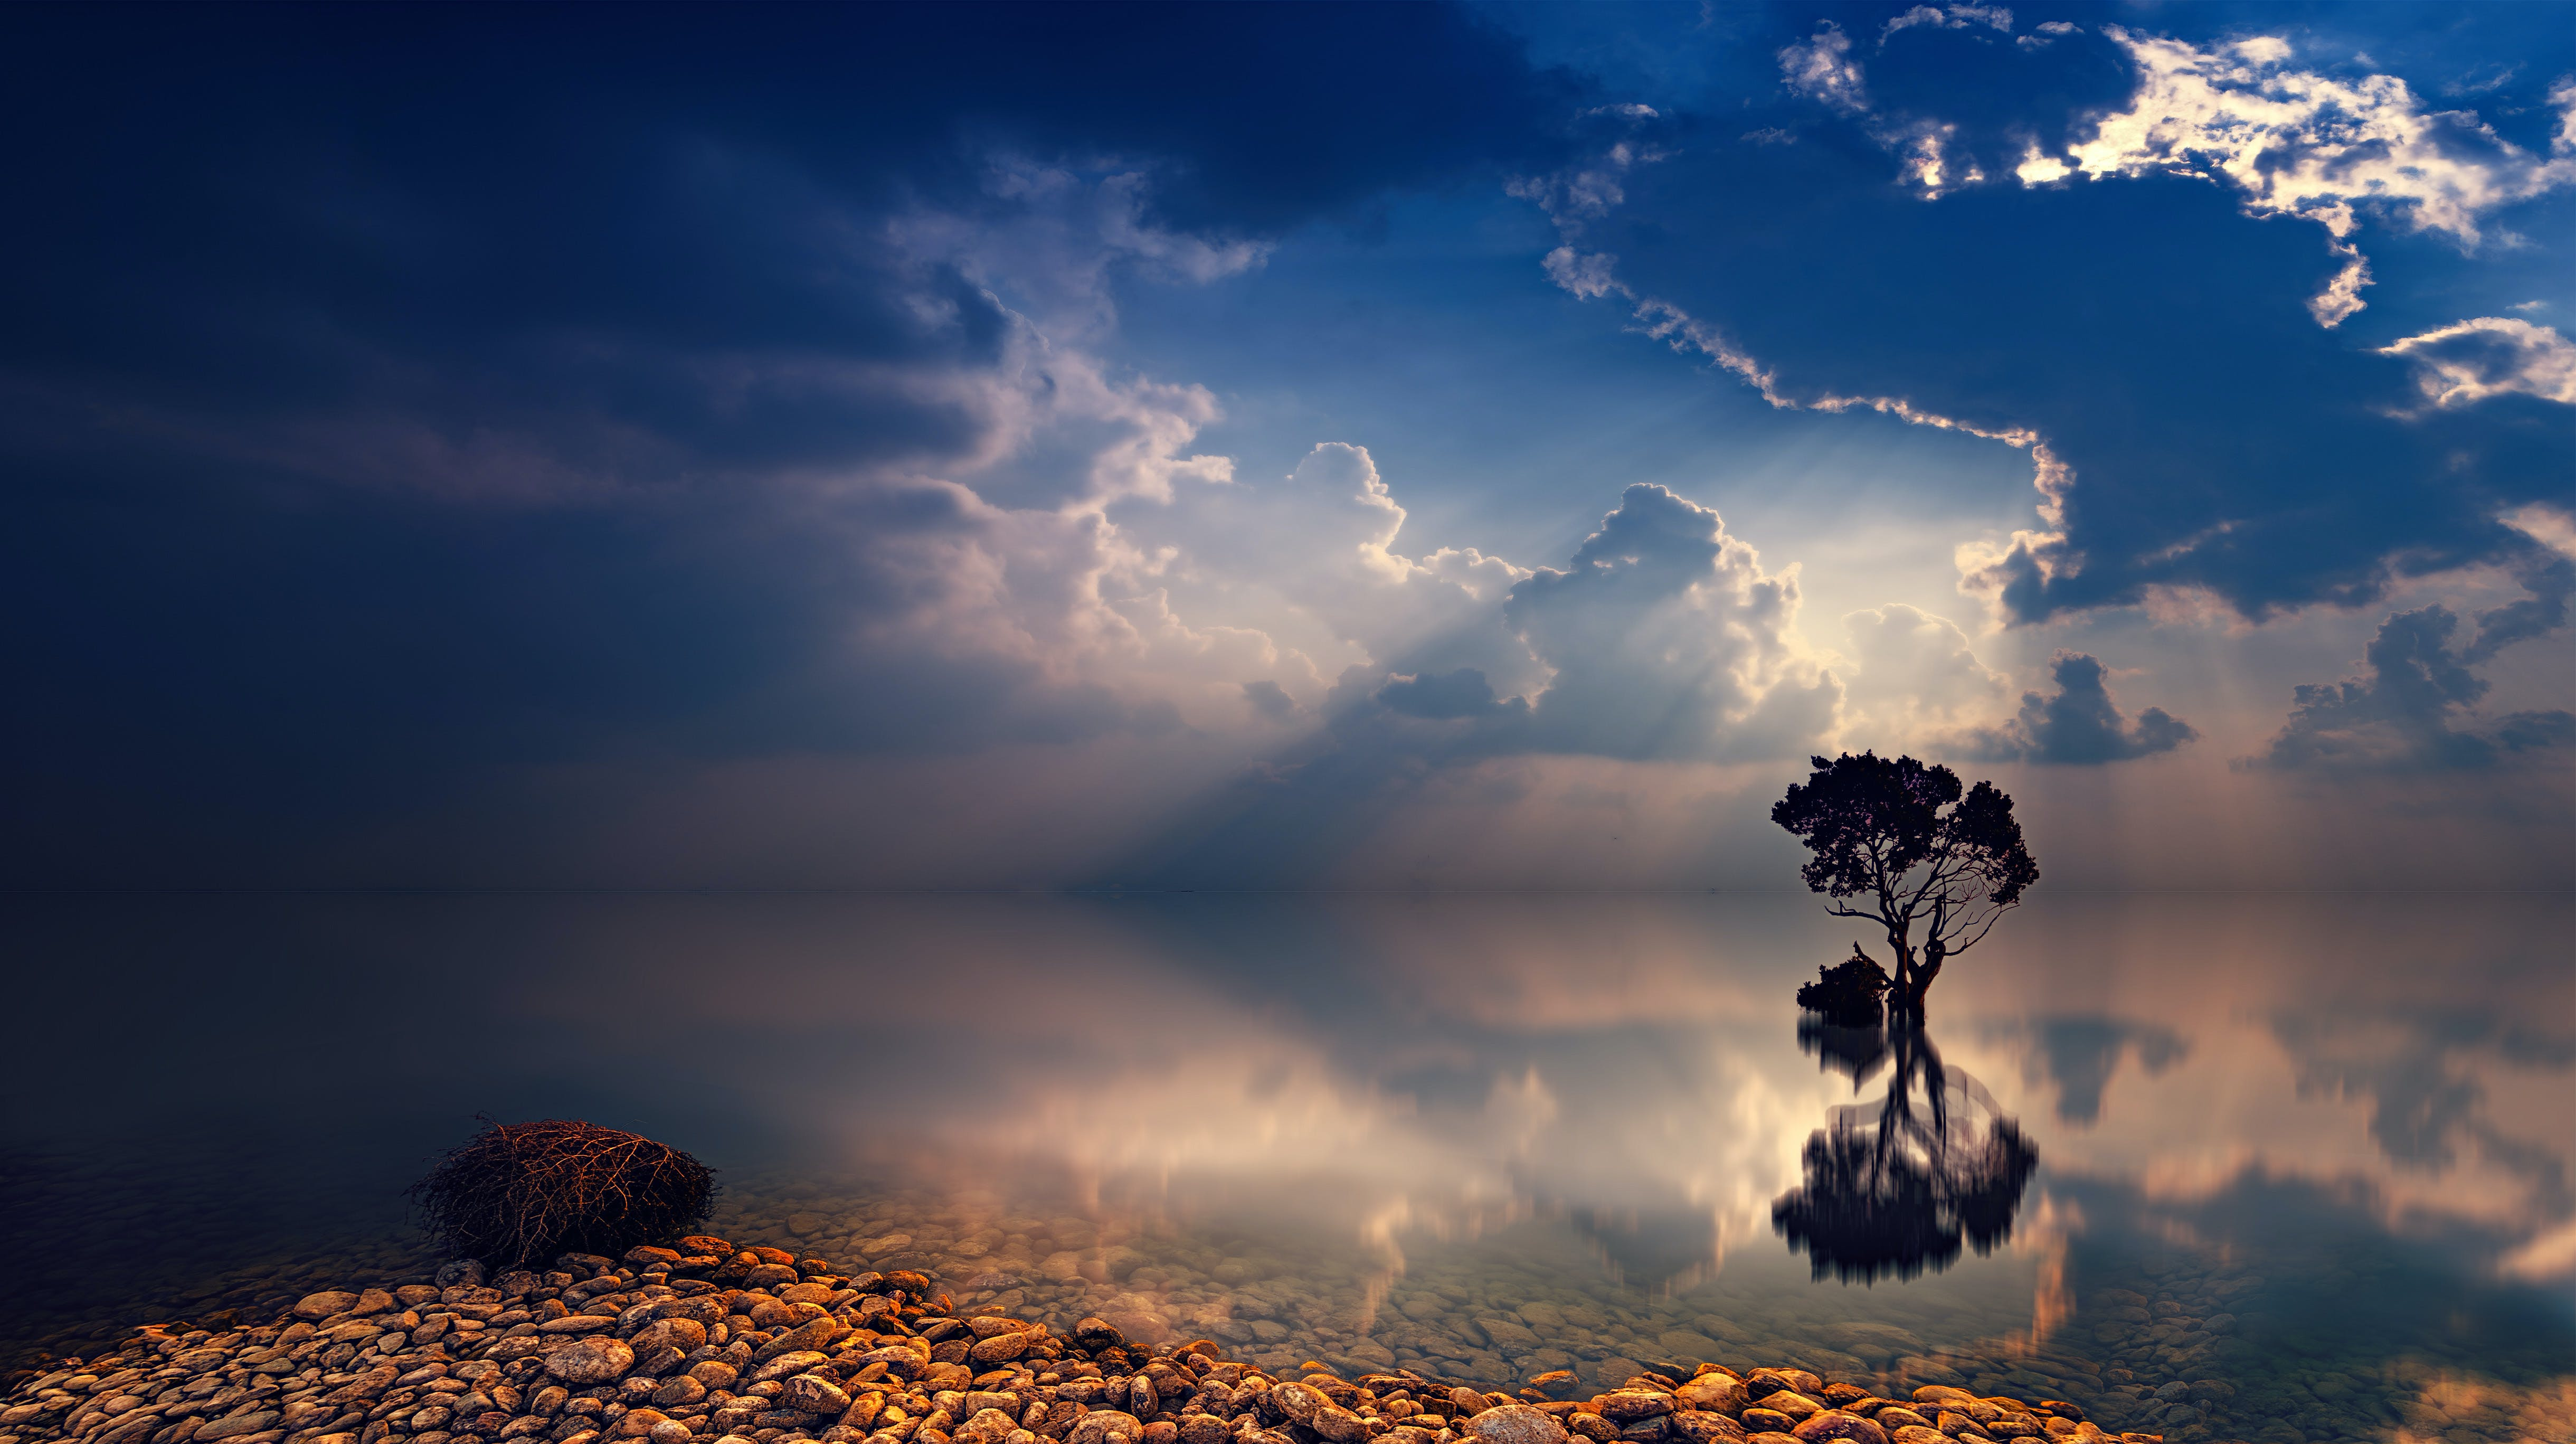 Reflecting Photo of Trees and Body of Water